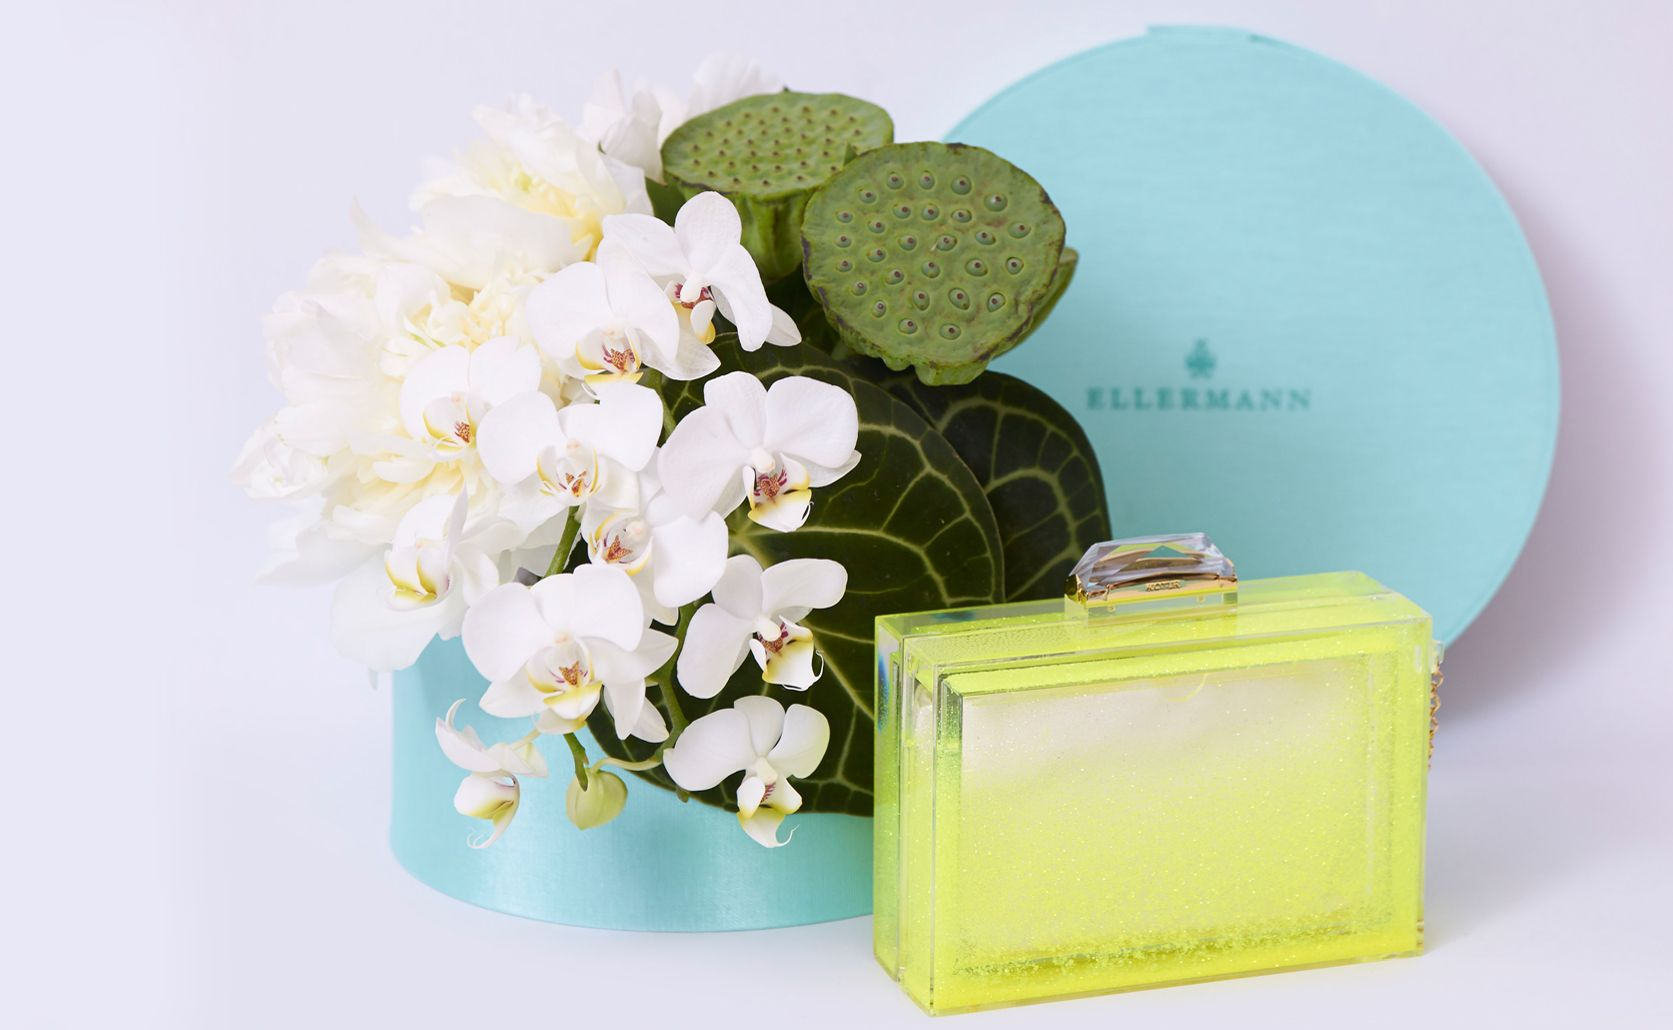 Fiona Kotur x Ellermann Collection for Mother's Day